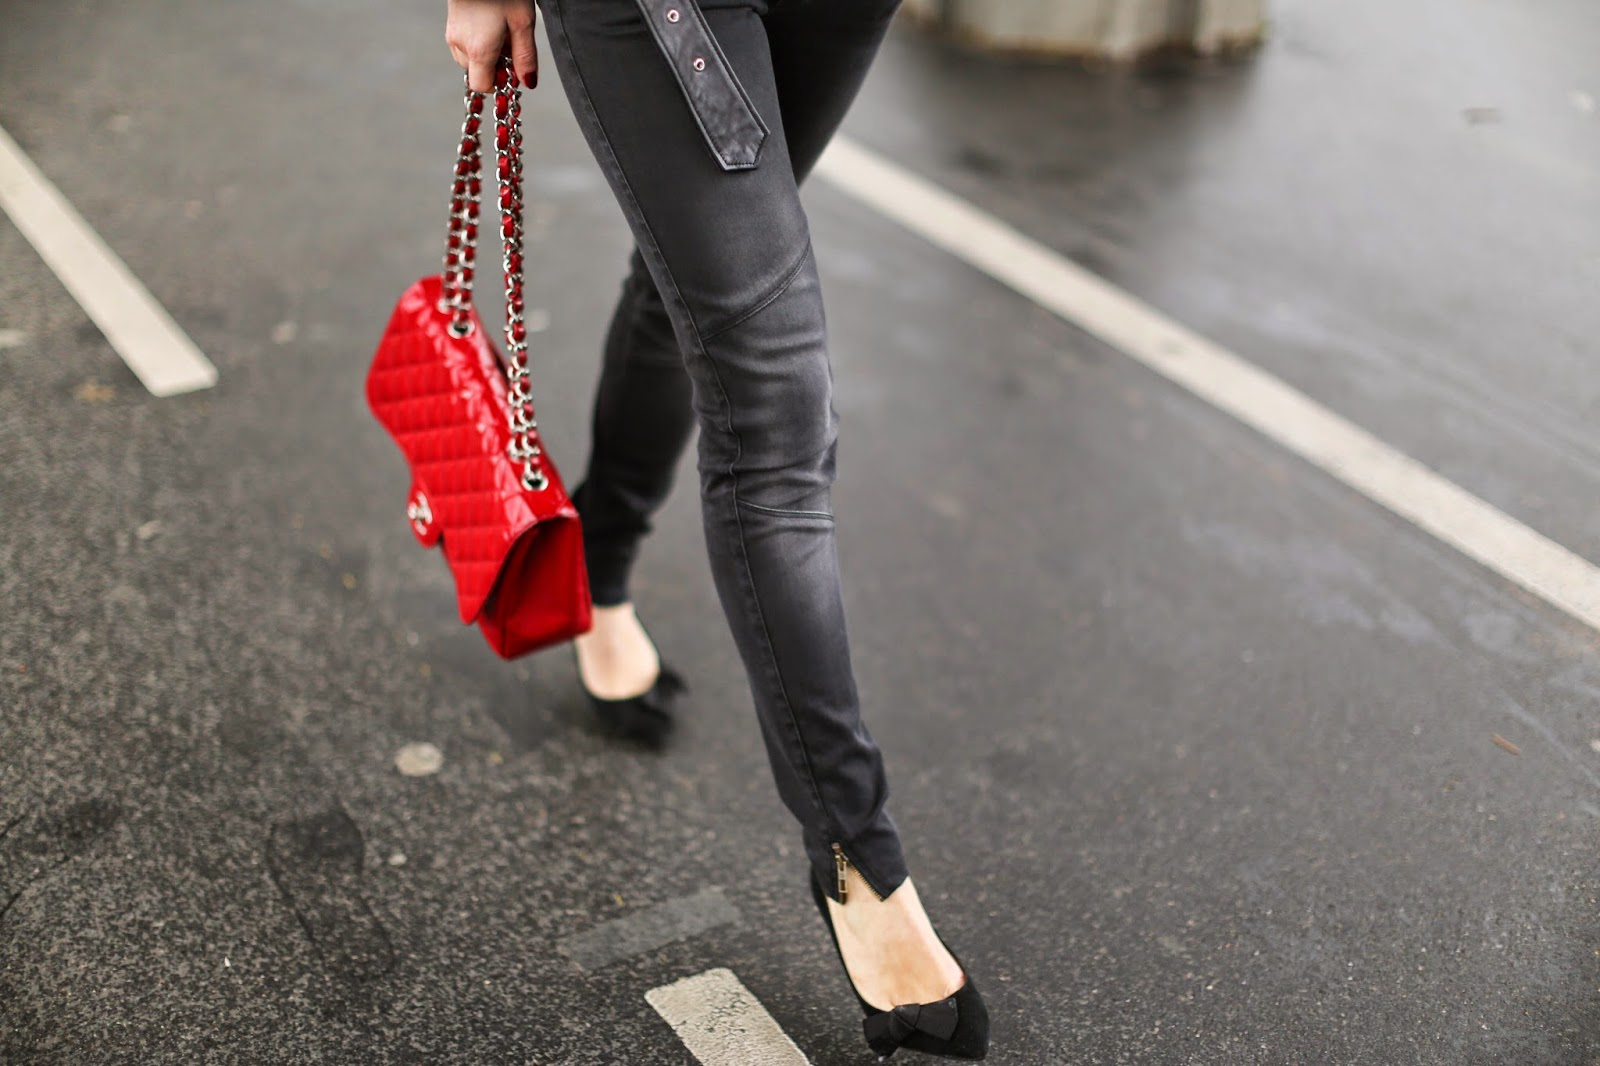 acne, leather jacket, biker chic, superfine, isabel marant, heels, topshop, preppy, rock, fashion blogger, streetstyle